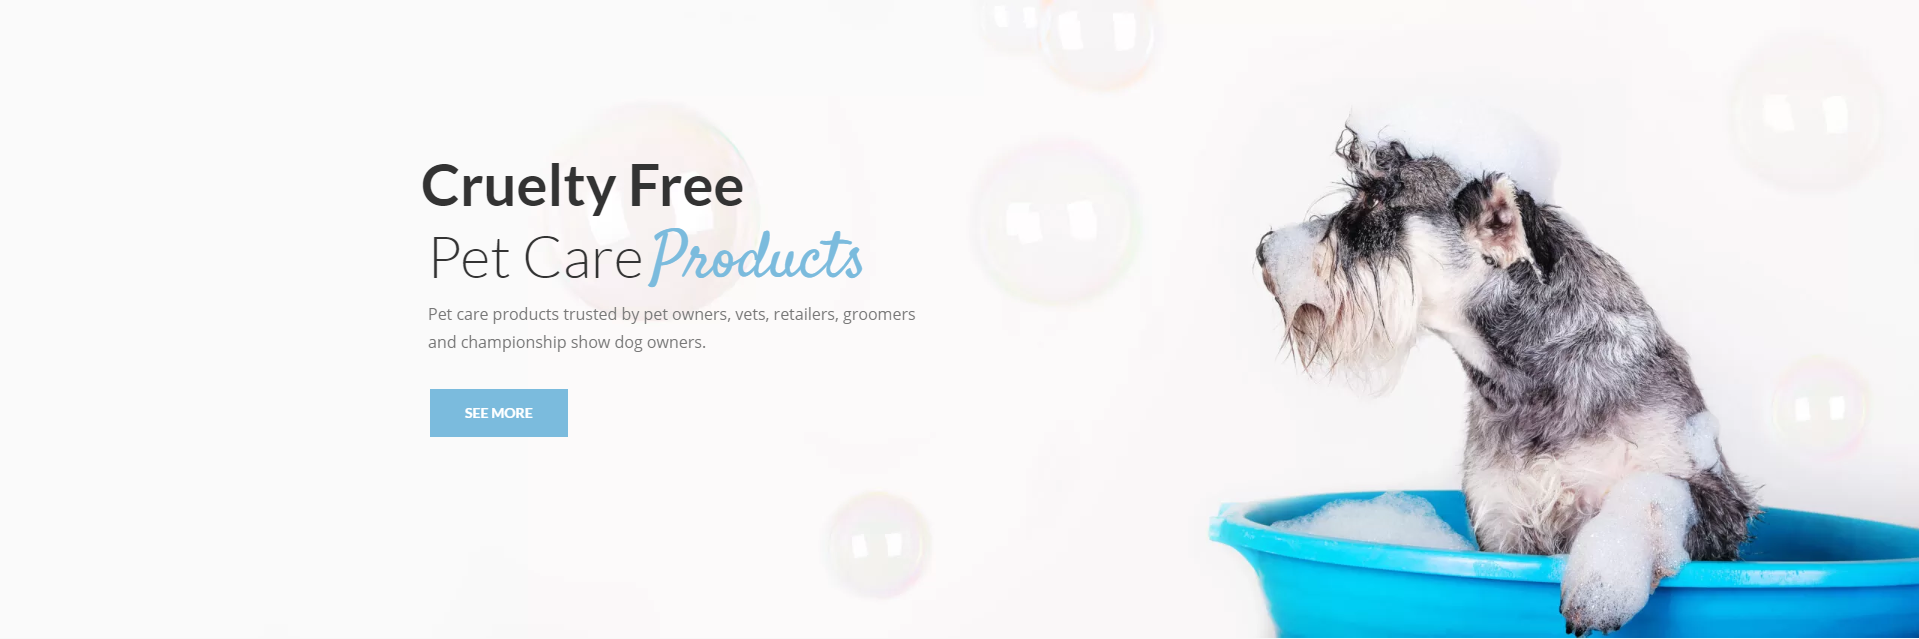 Cruelty Free Pet Care Products